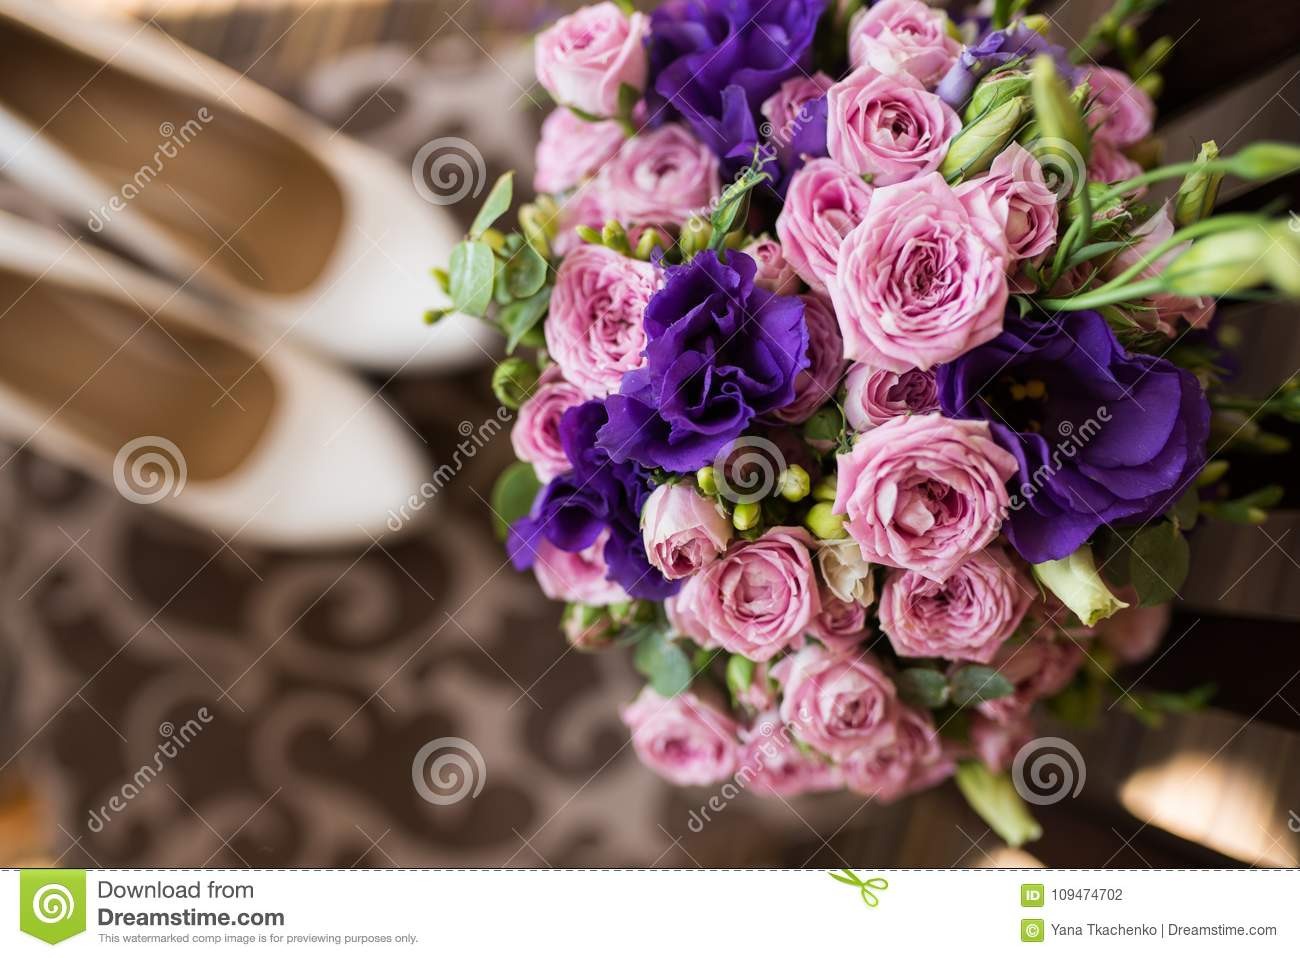 Bridal Bouquet With Pink And Purple Flowers Wedding Preparation